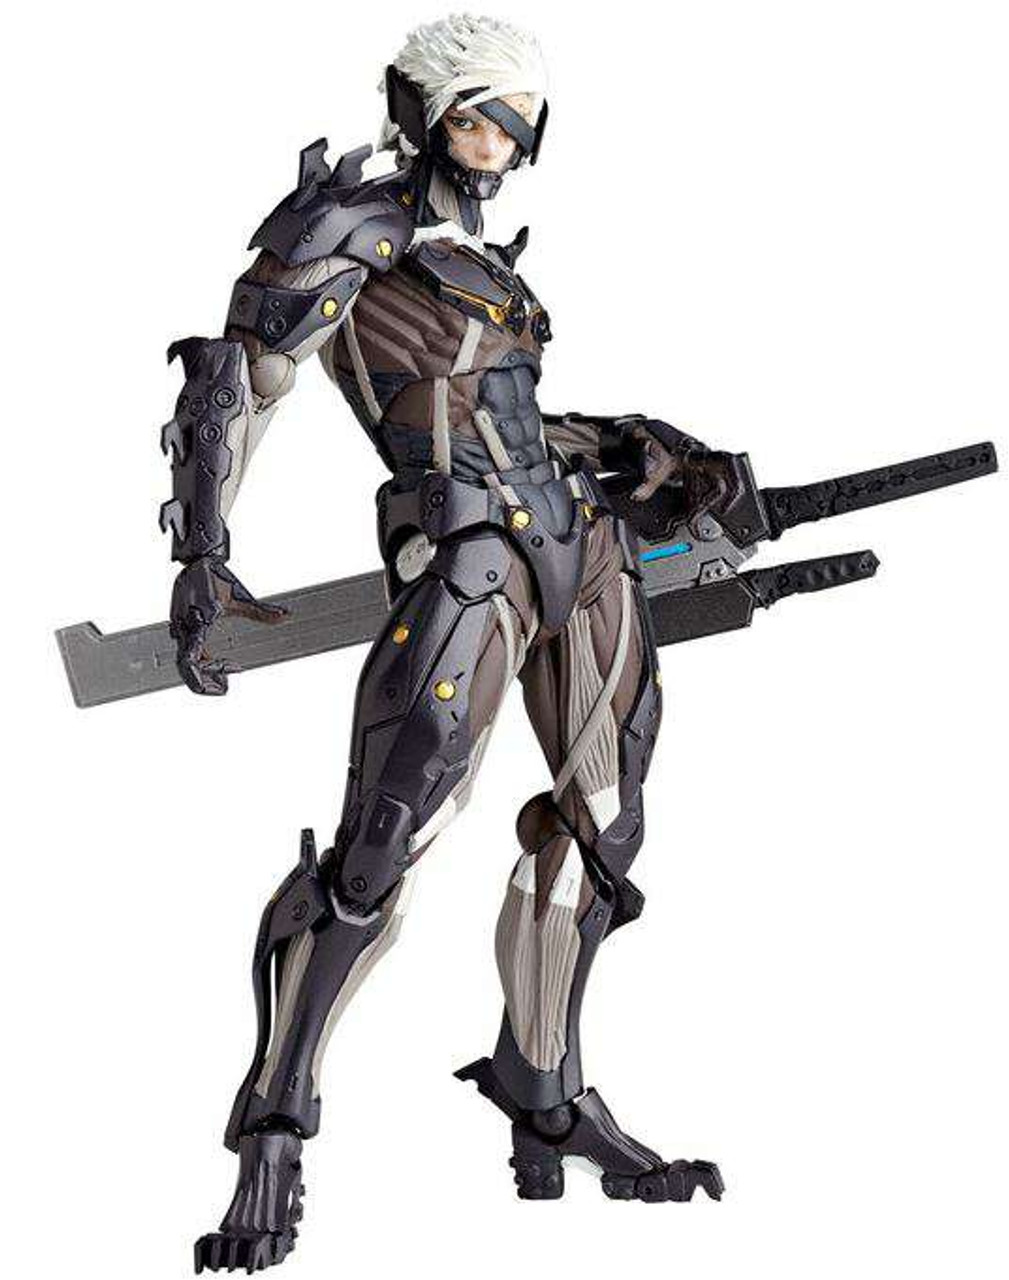 Metal Gear Solid Metal Gear Rising Revengeance Revoltech Raiden Exclusive Action Figure [White Armor]